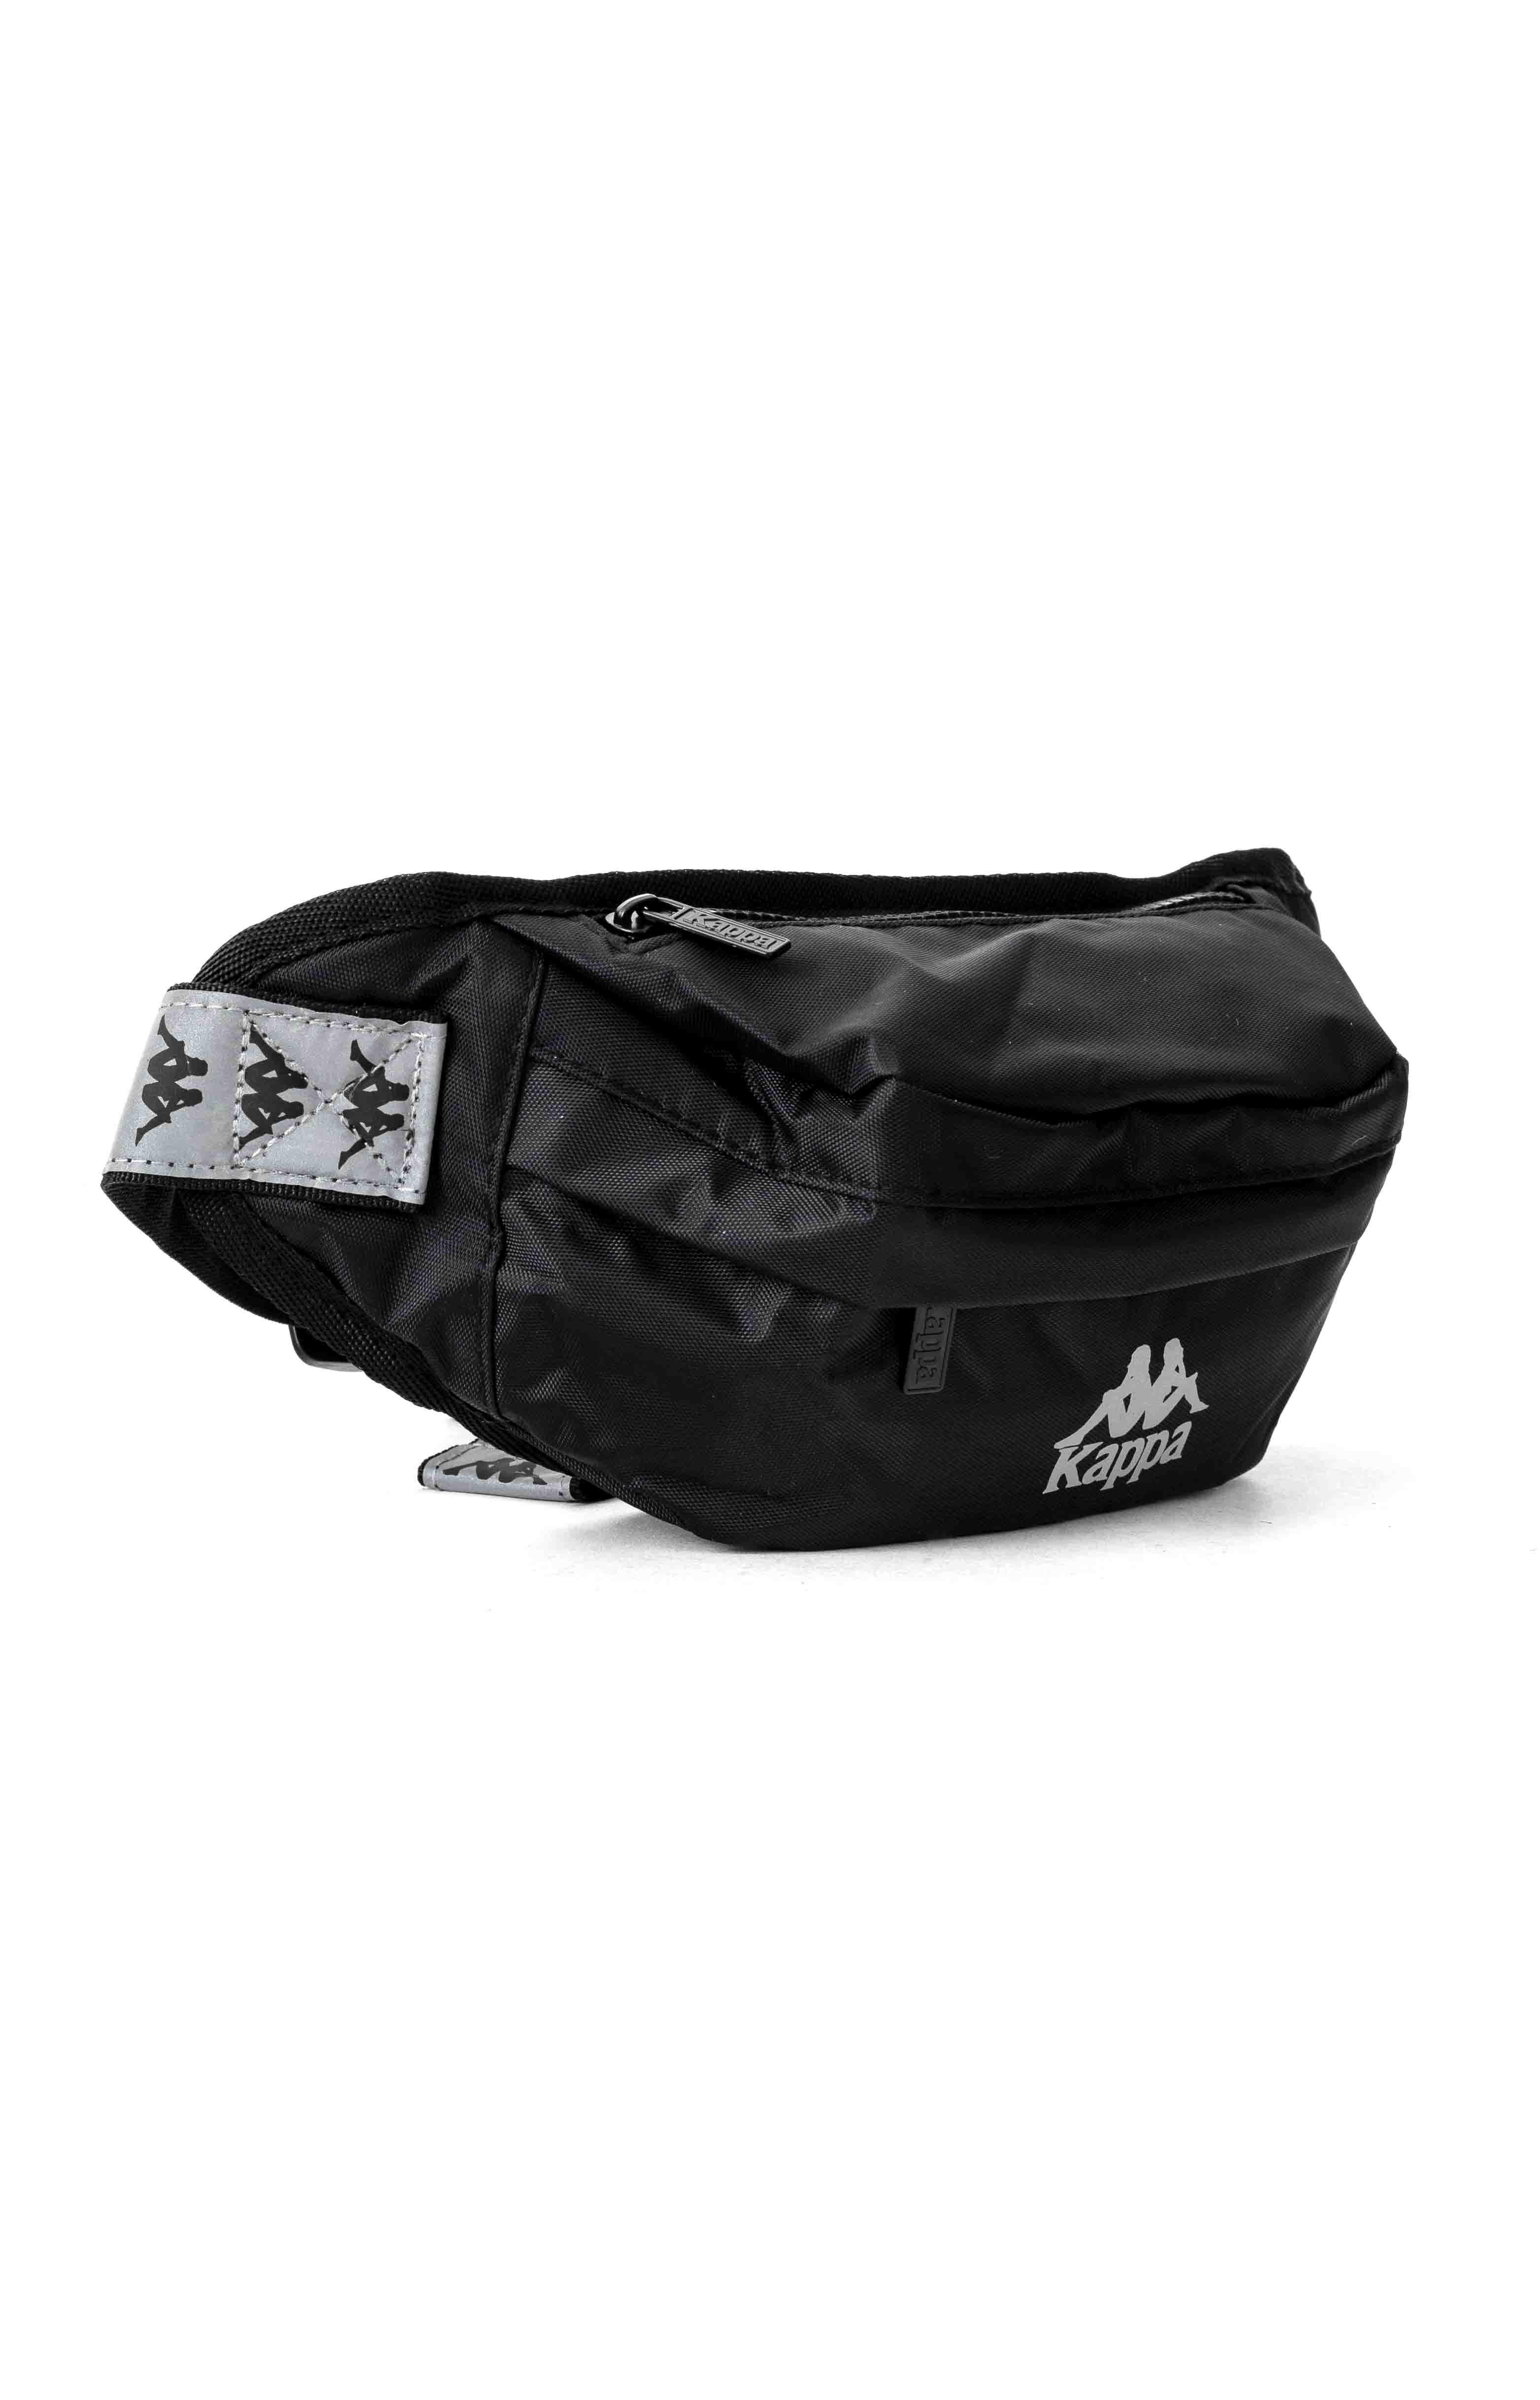 222 Banda Dante Danky Bag - Black/Grey 2